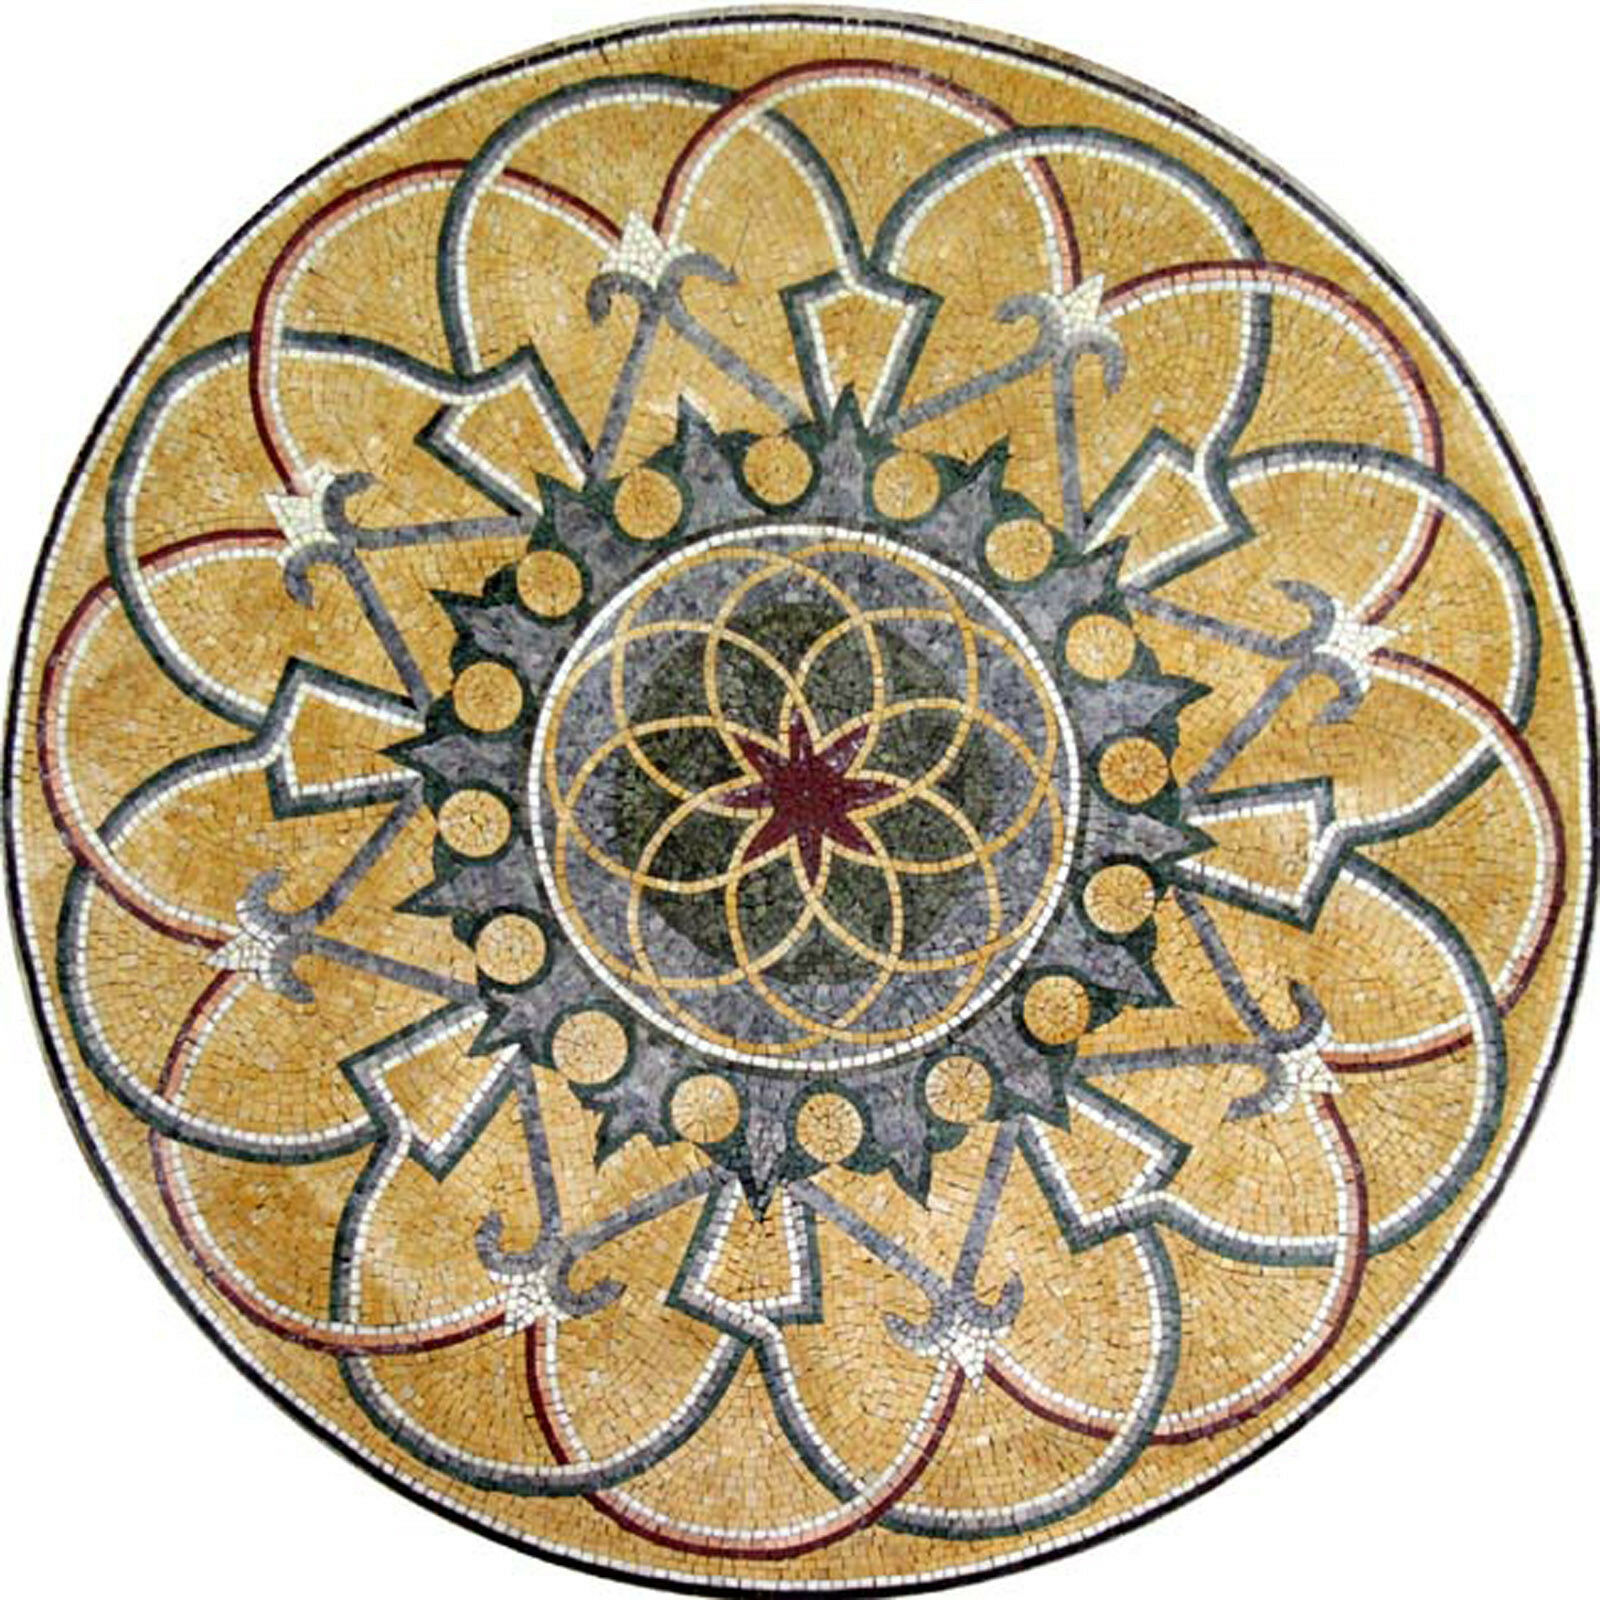 Rich Arabesque Round Medallion Motif Design Floor Pool  Home Marble Mosaic MD568